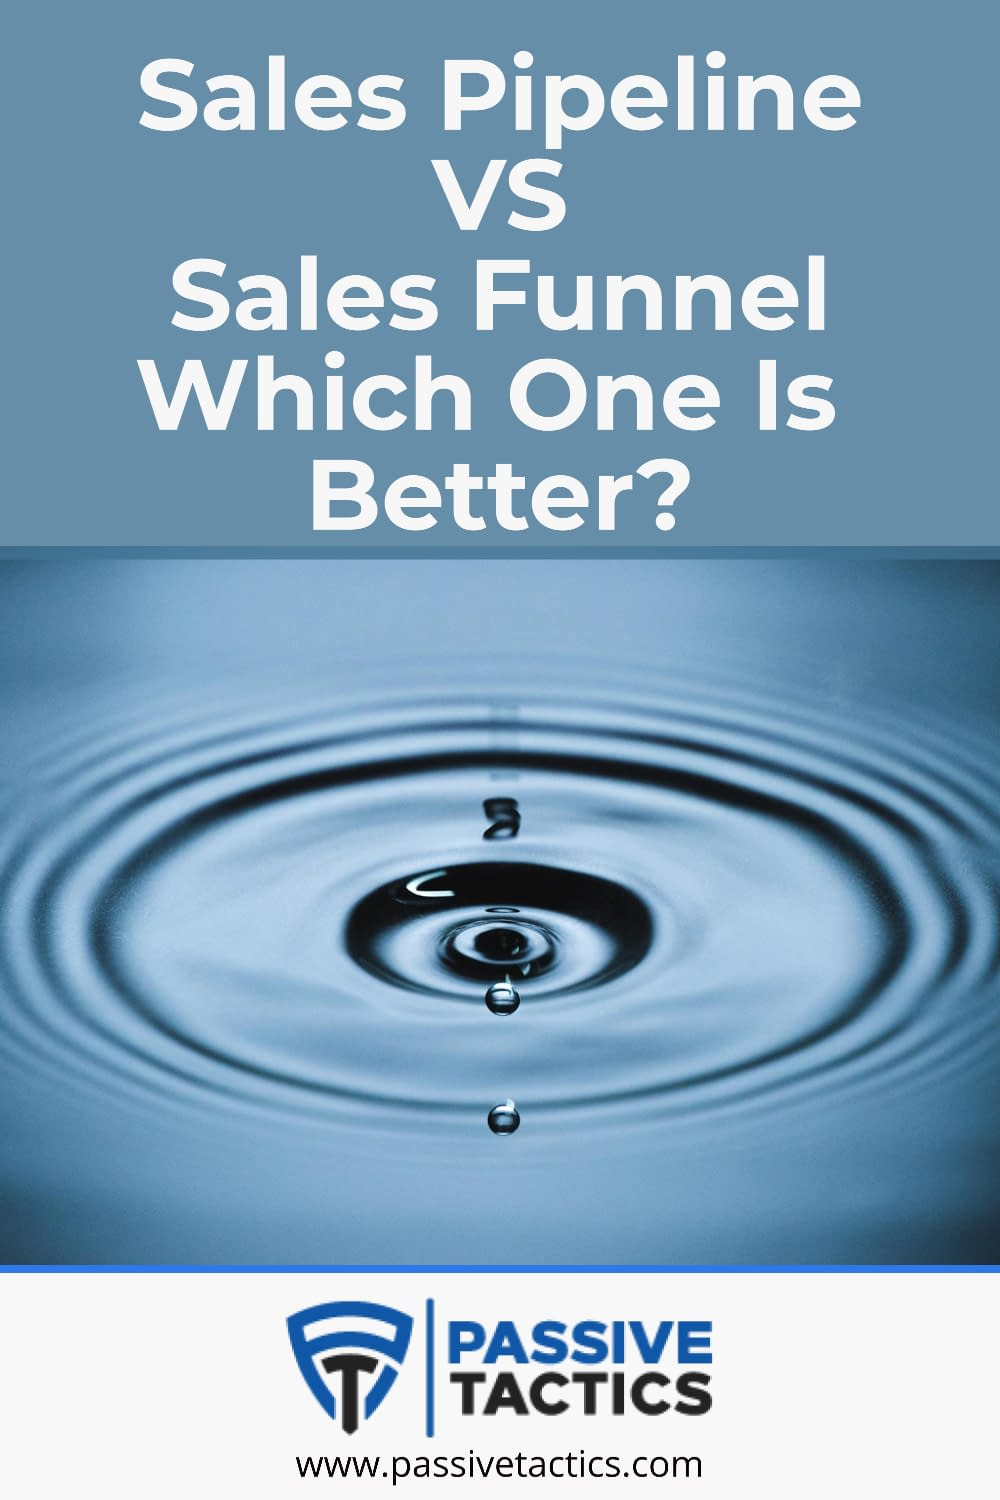 Sales Pipeline VS Sales Funnel: Which One Is Better?